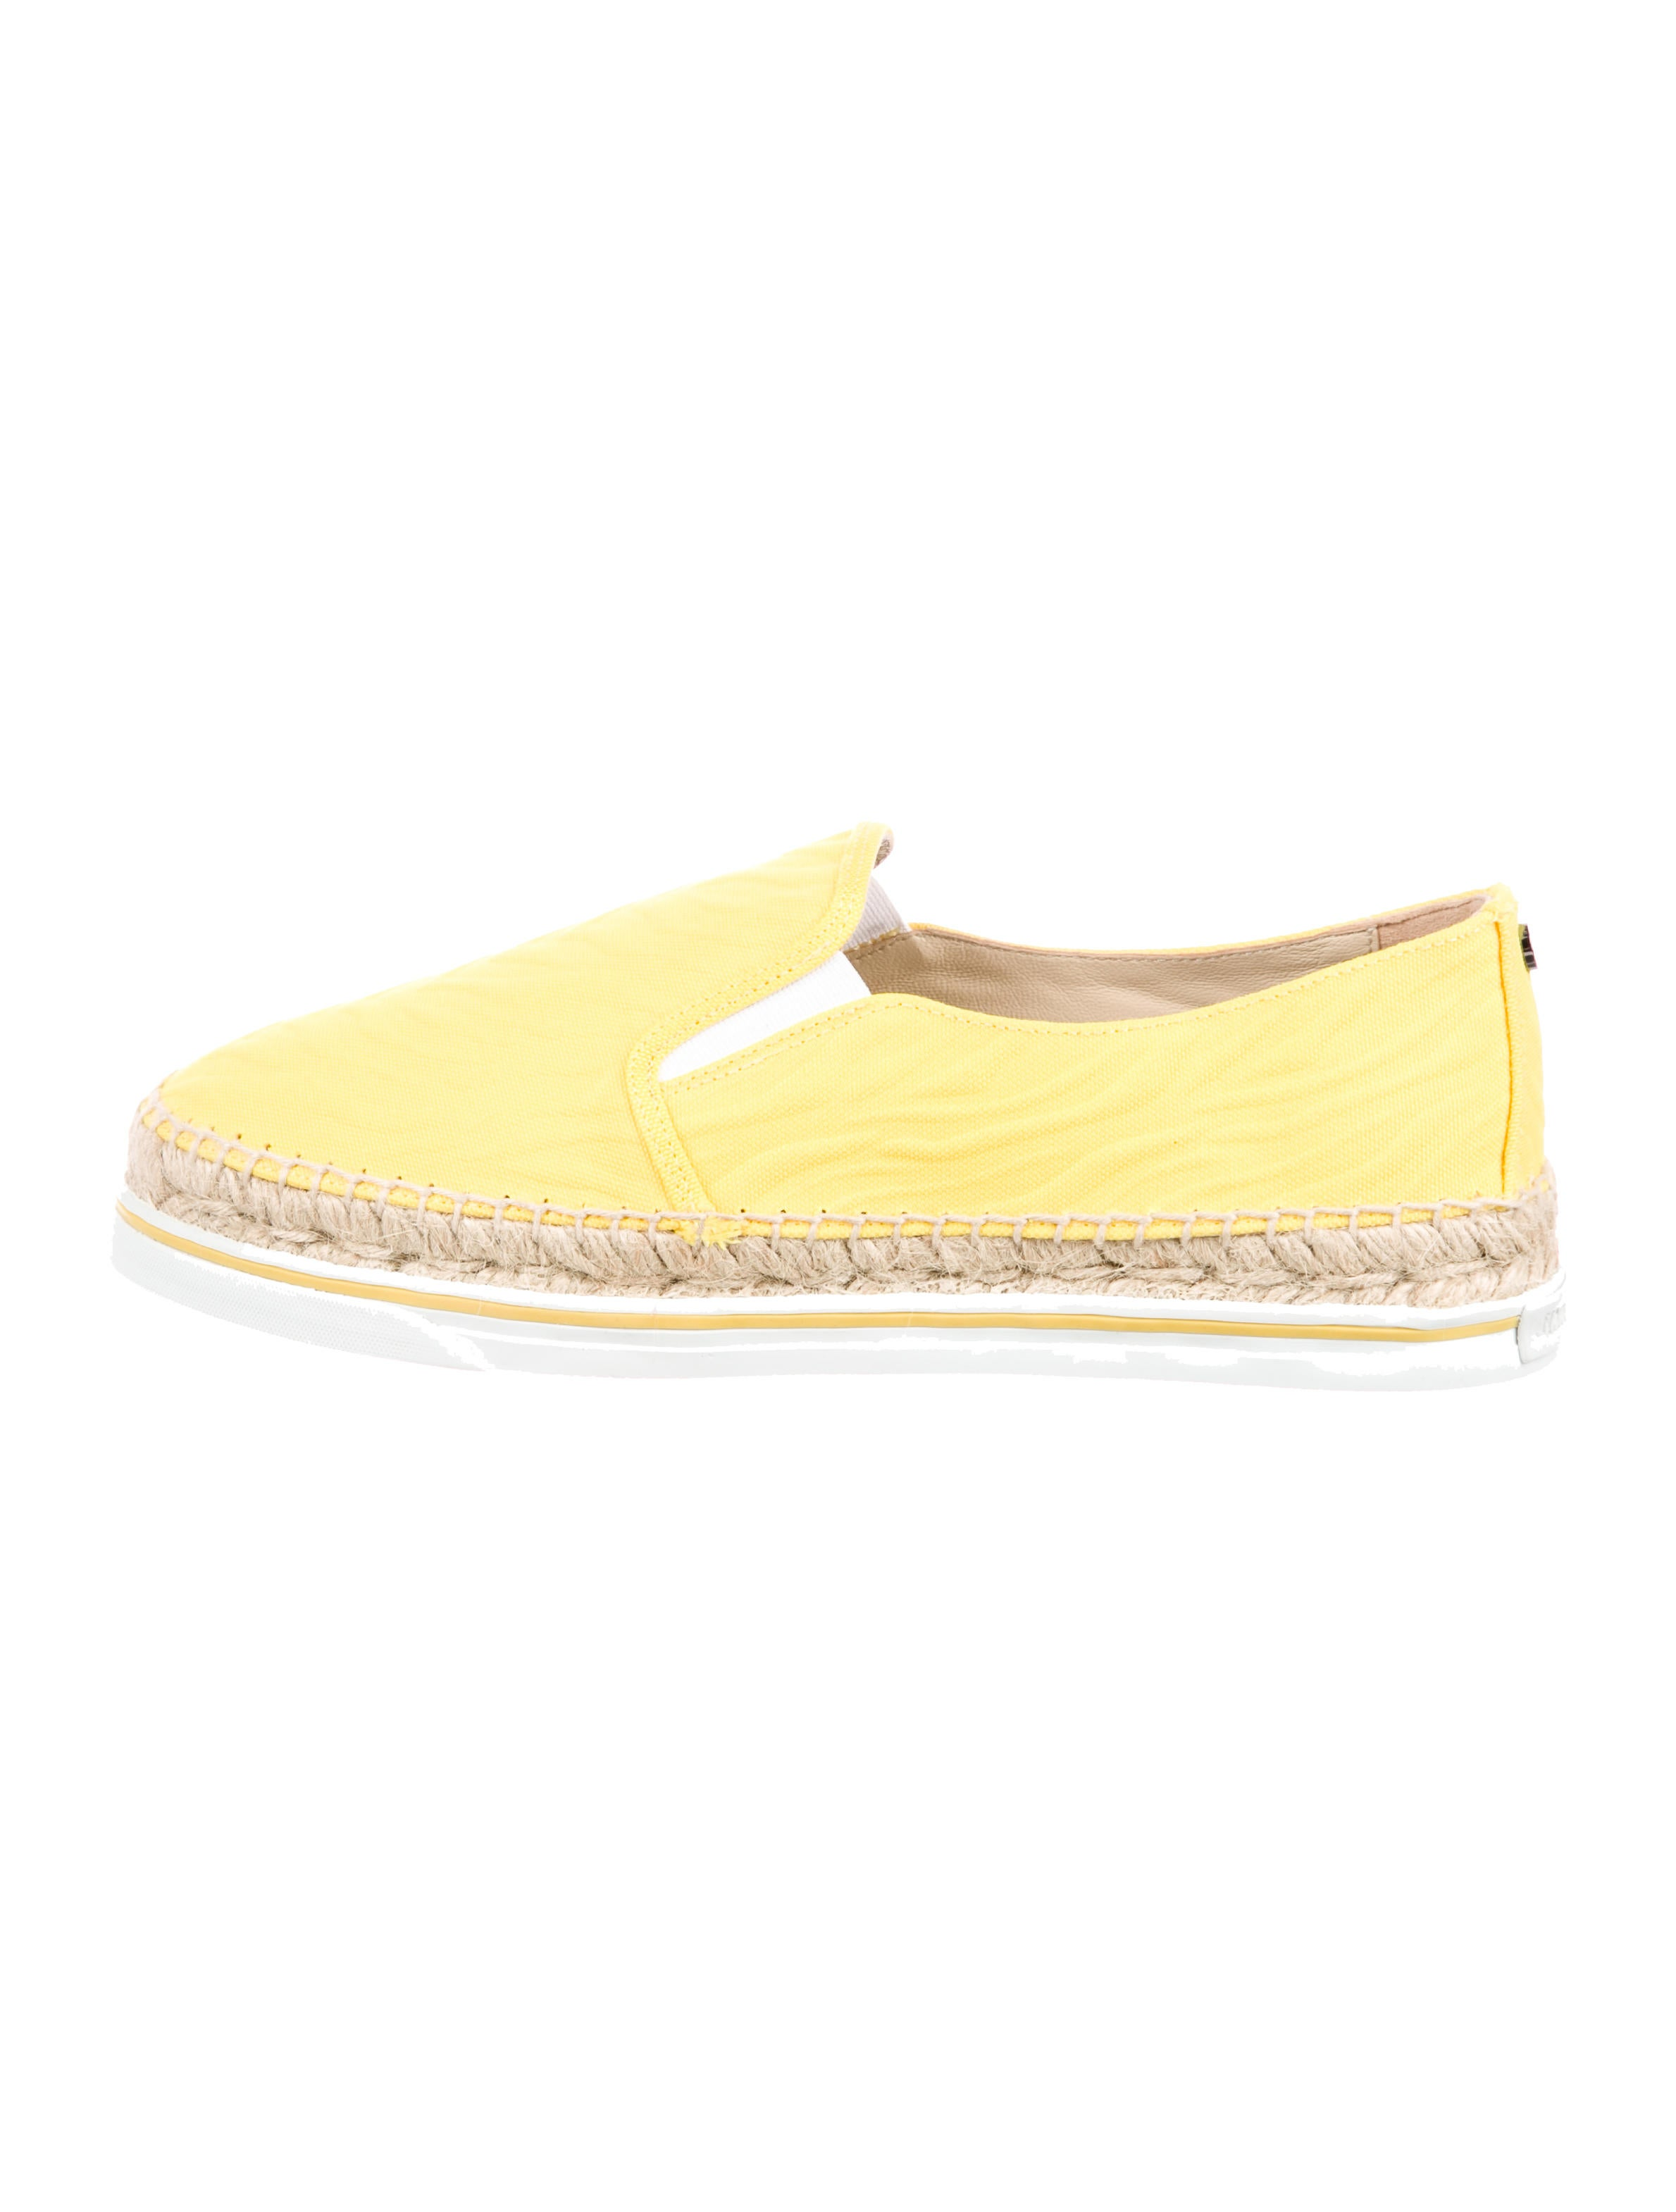 discount low shipping fee Jimmy Choo Dawn Espadrille Sneakers w/ Tags sale supply 2015 new online qEu4bBSh